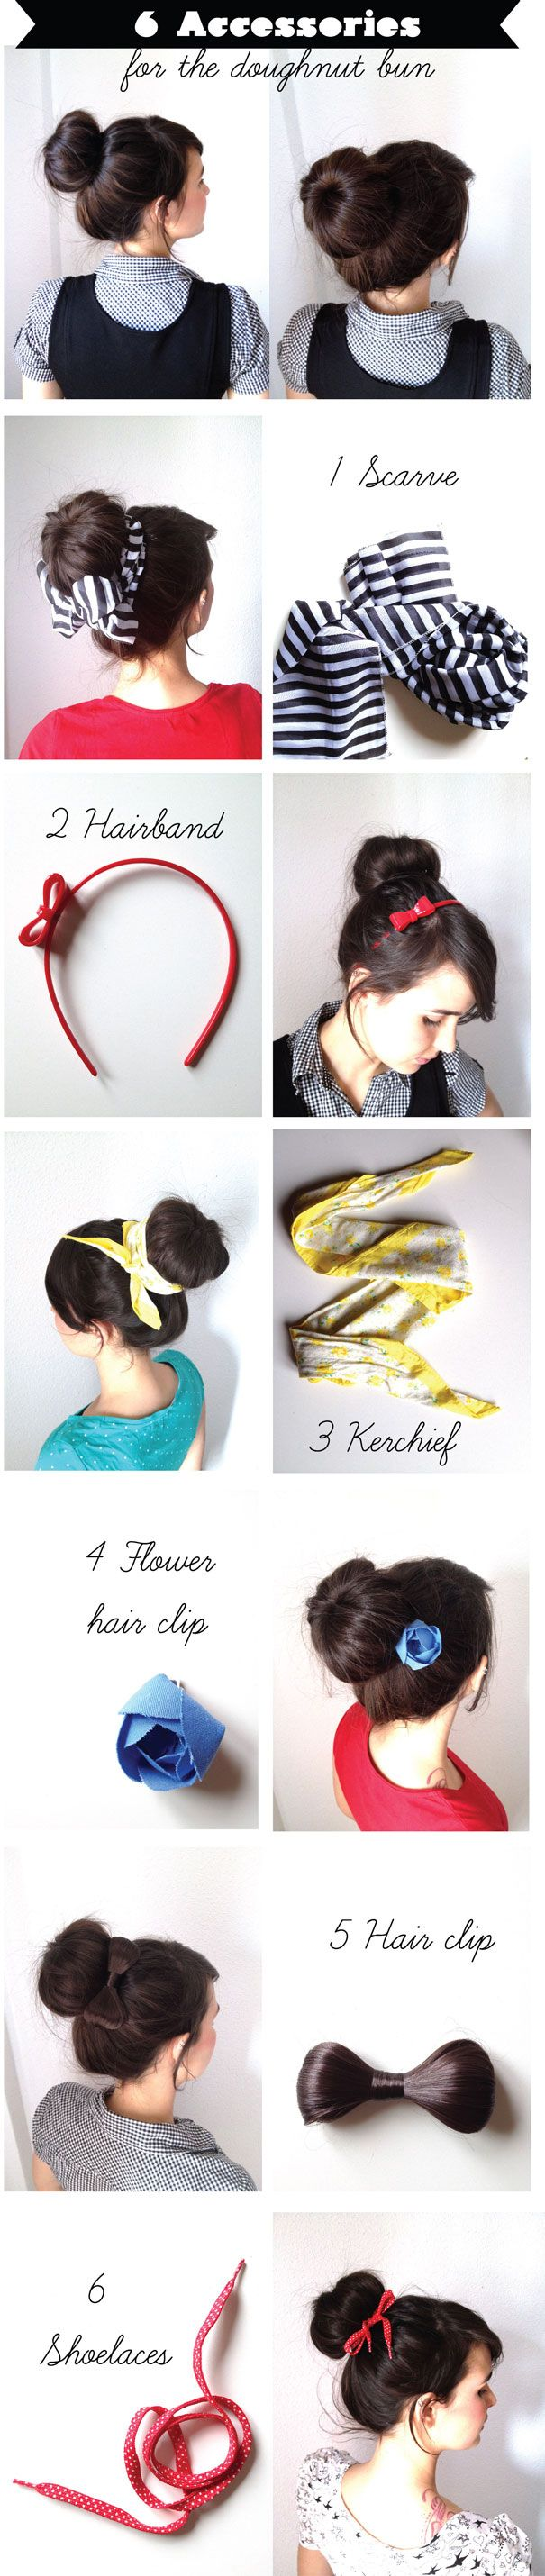 Accessory Ideas for Your Bun | How To Get Summer's 27 Best Hairstyles